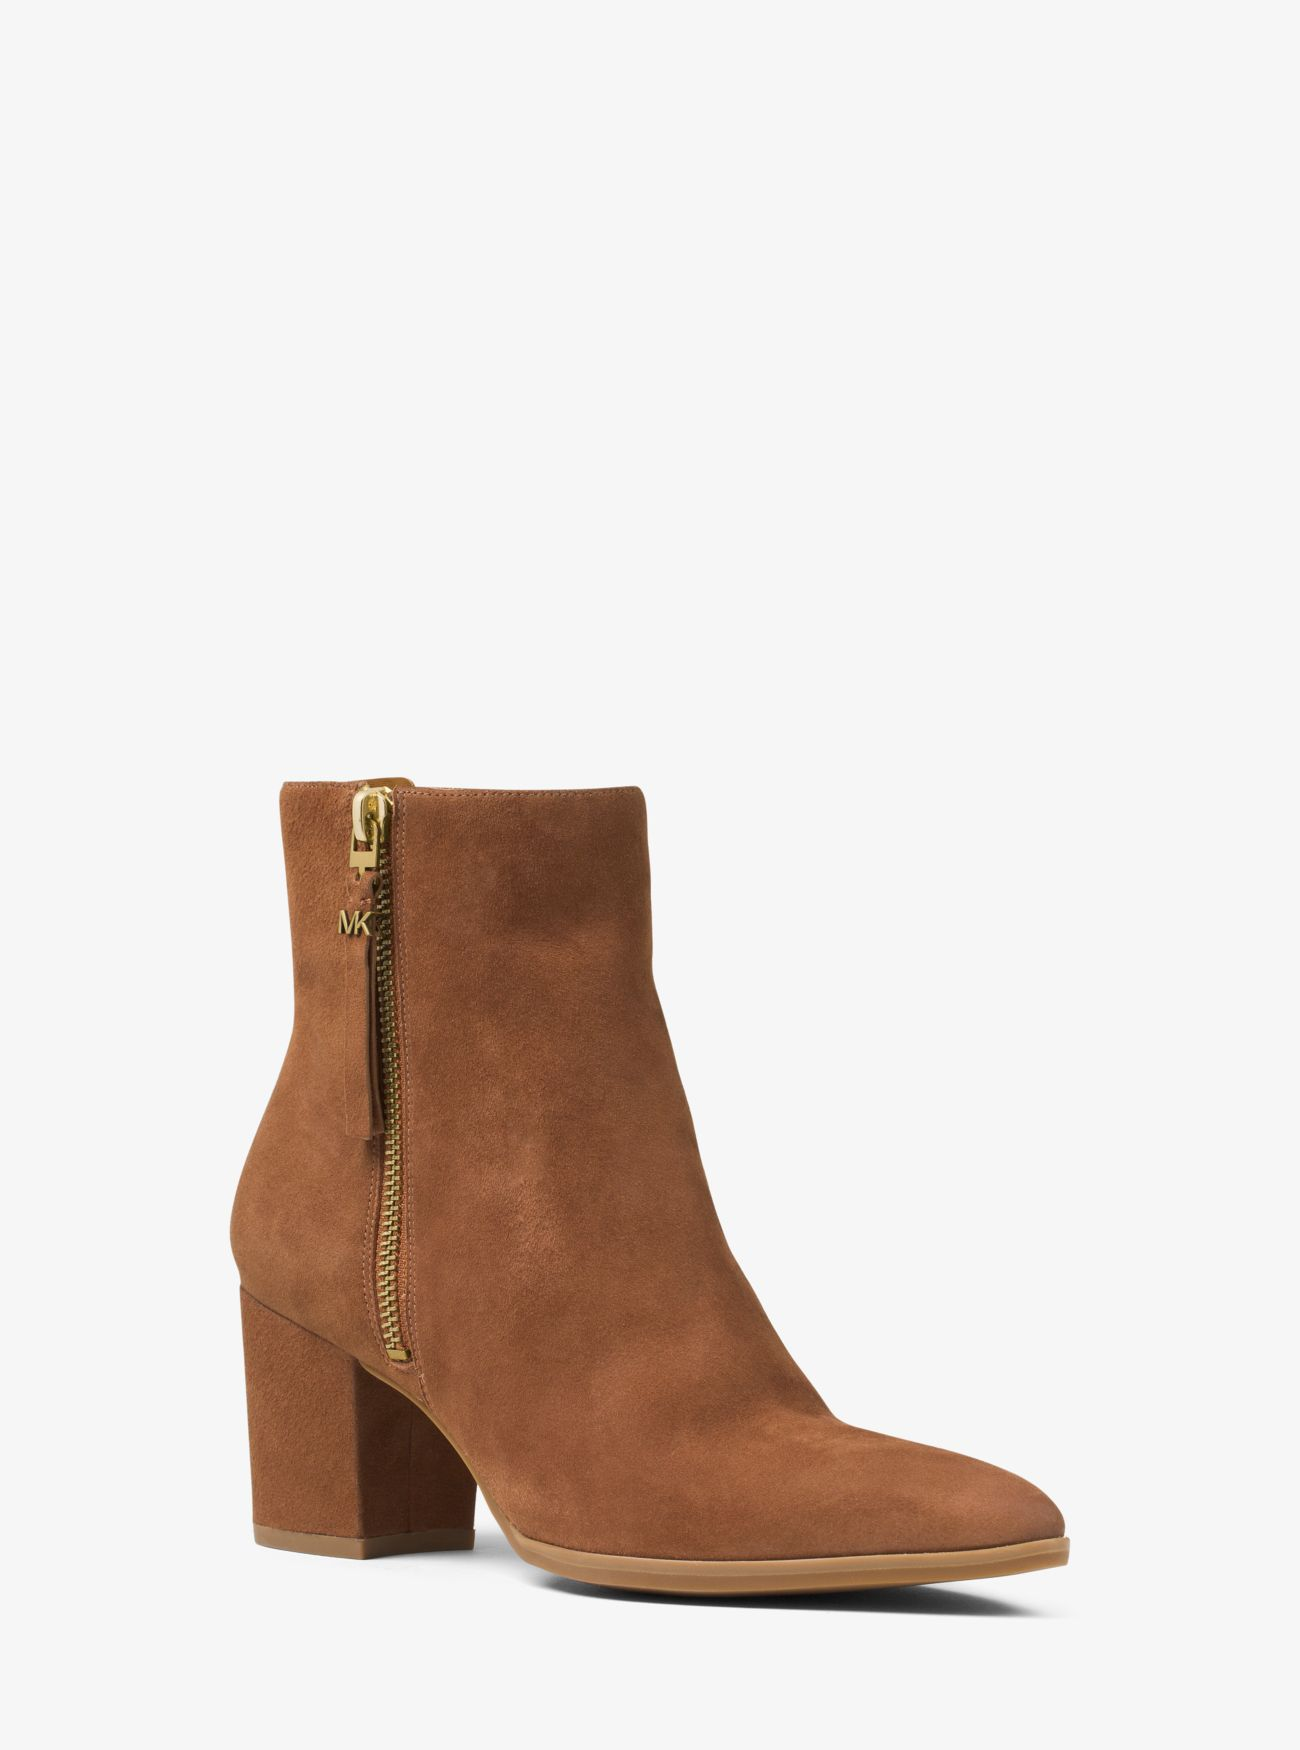 Boots & Ankle Boots | Women's Shoes | Michael Kors